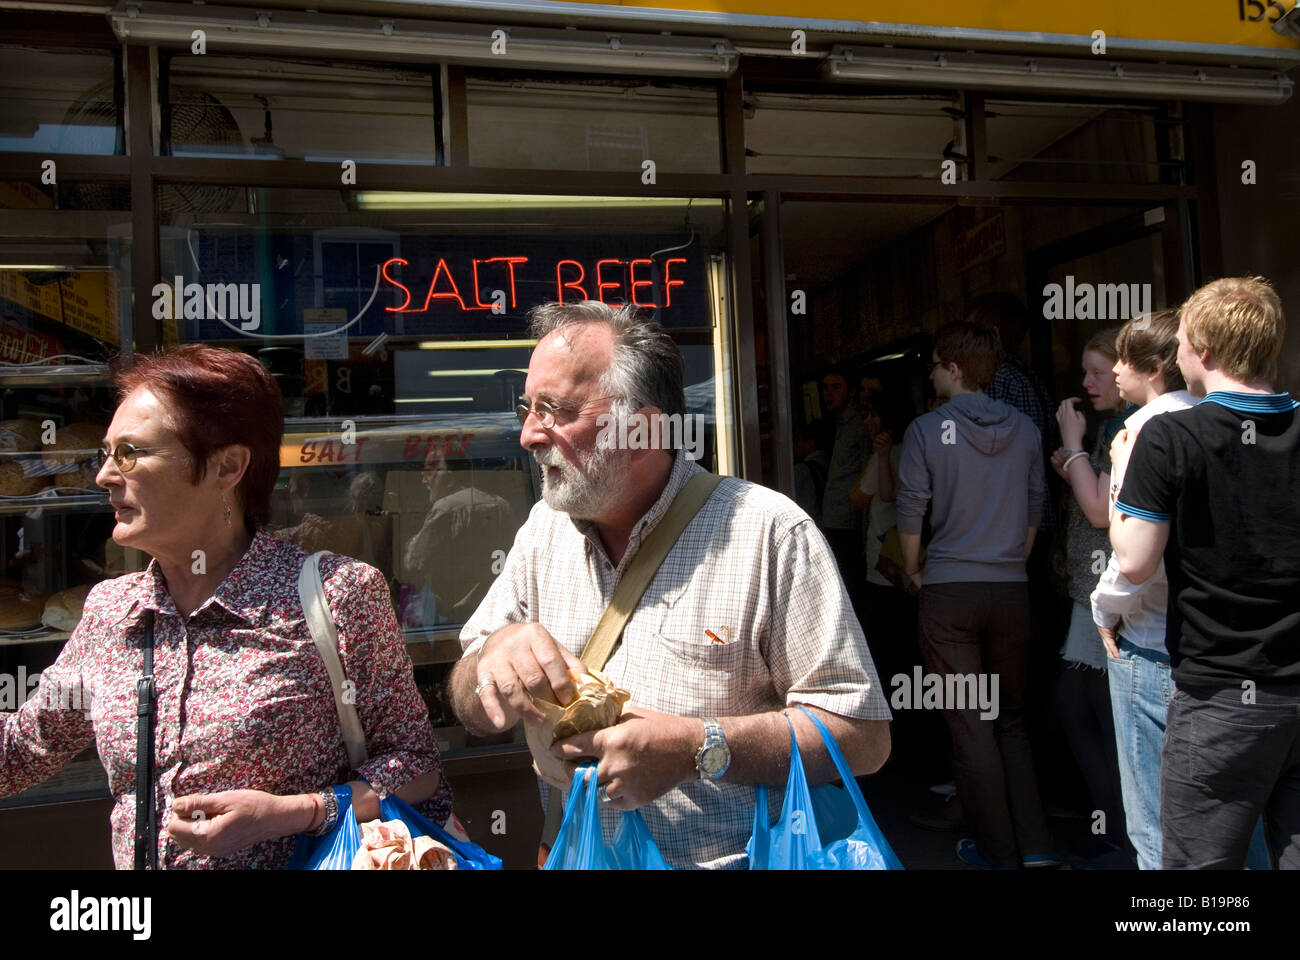 Brick Lane Sunday June 8th 2008 A couple leaving the Salt Beef shop where they have bought rolls - Stock Image